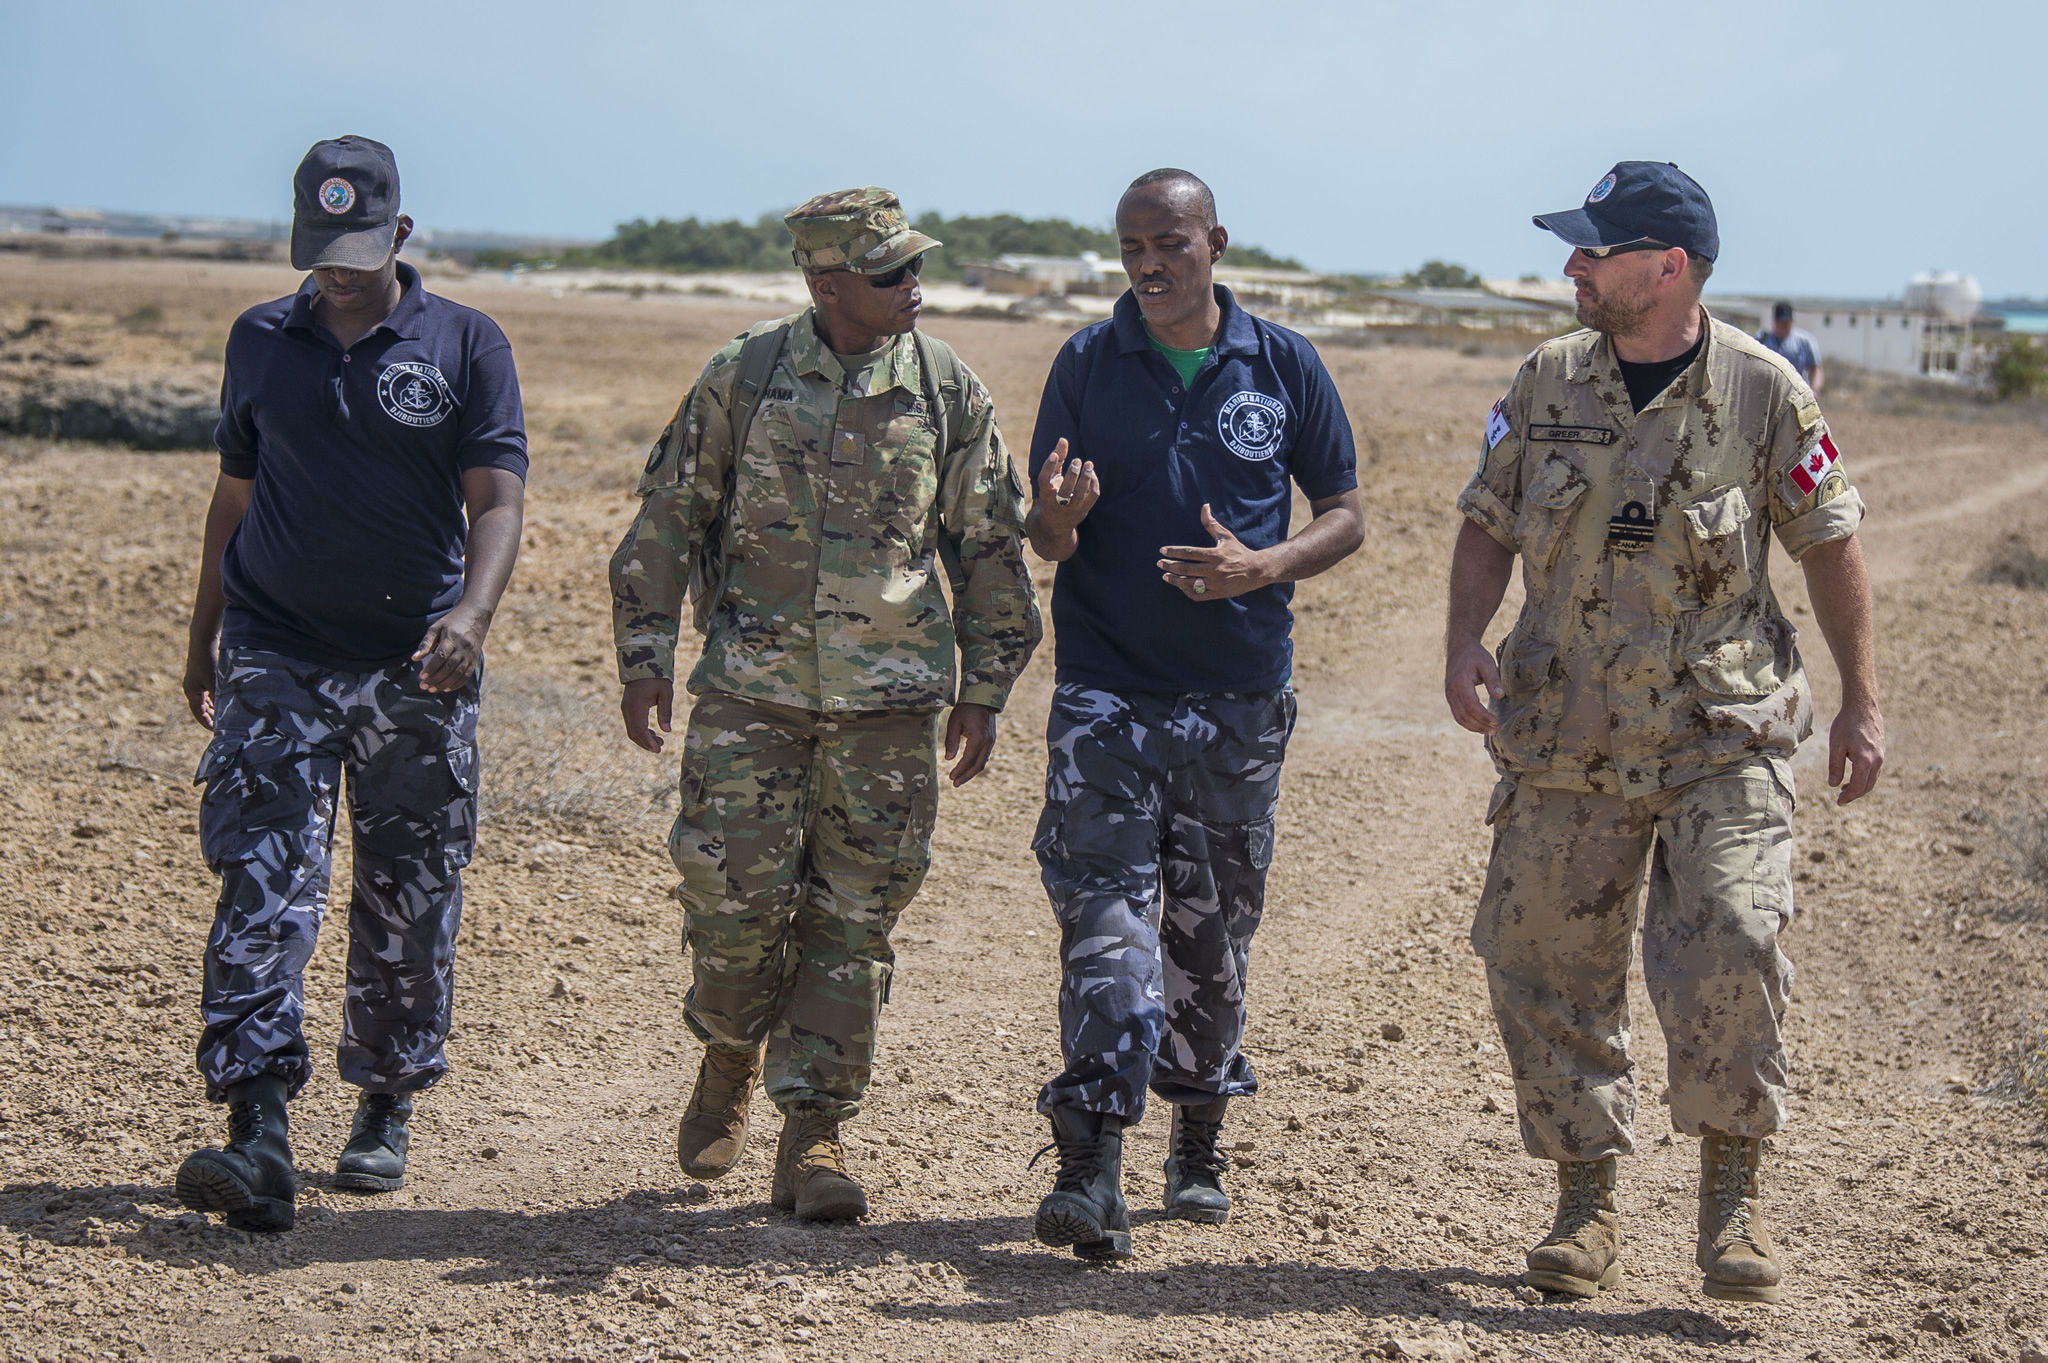 Four military members walk down a dirt road